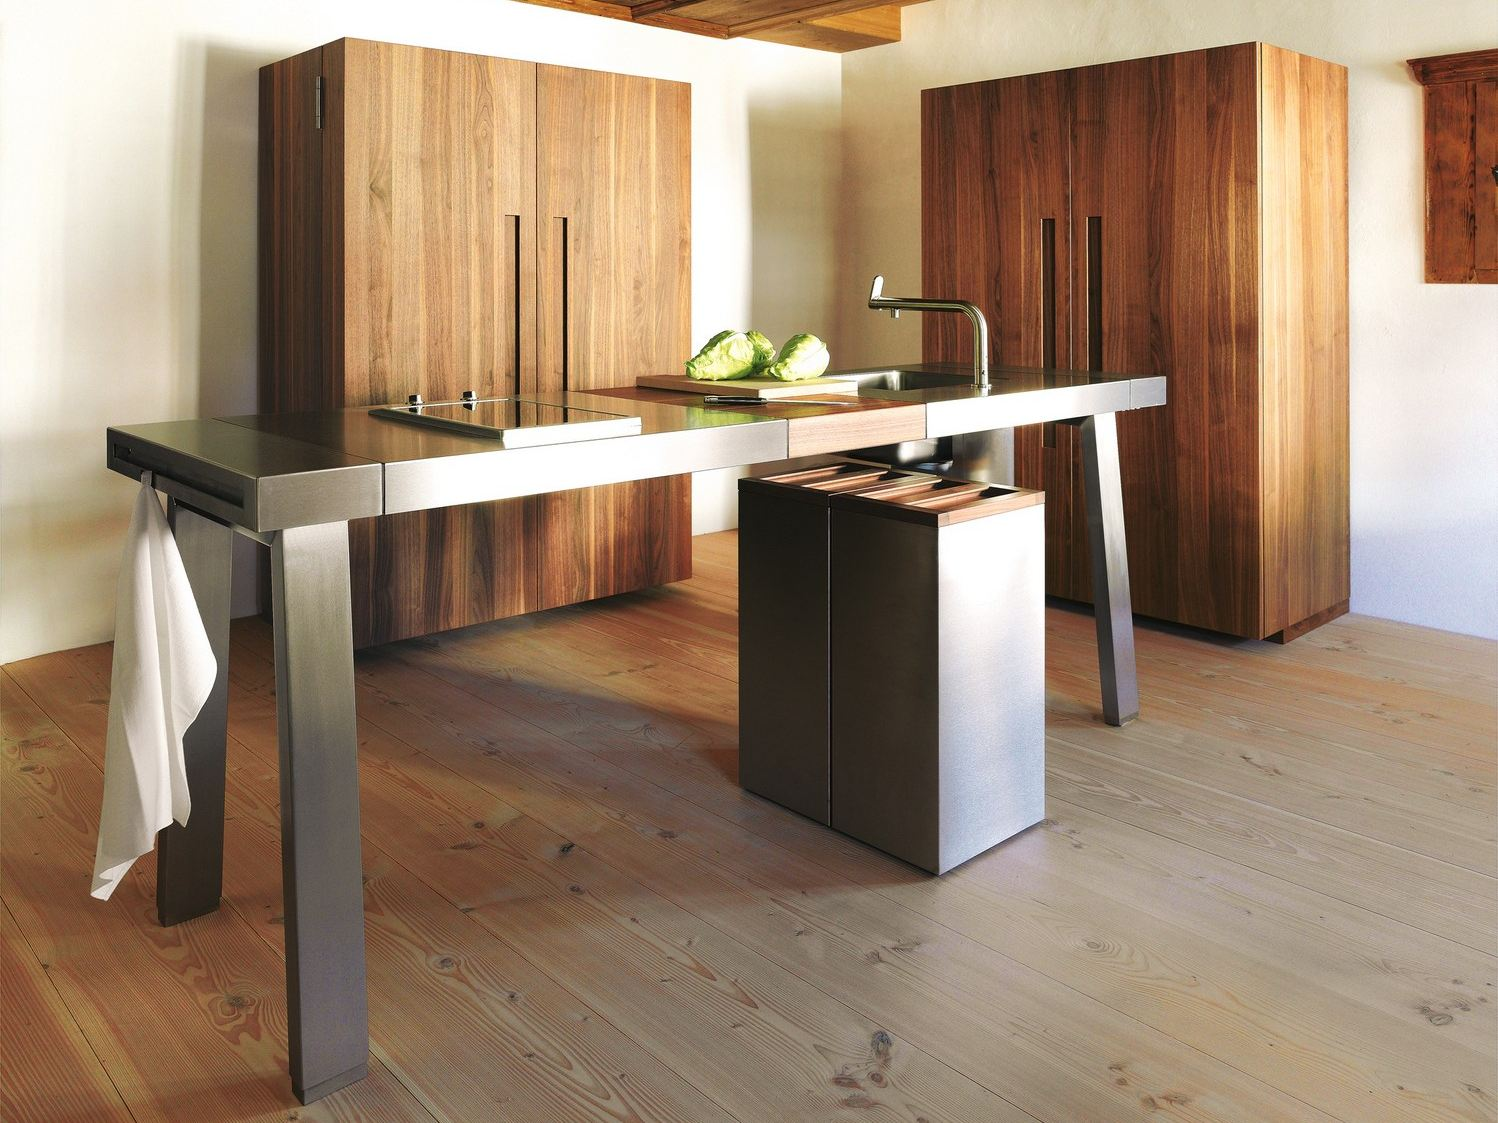 fitted kitchen b2 by bulthaup design eoos. Black Bedroom Furniture Sets. Home Design Ideas